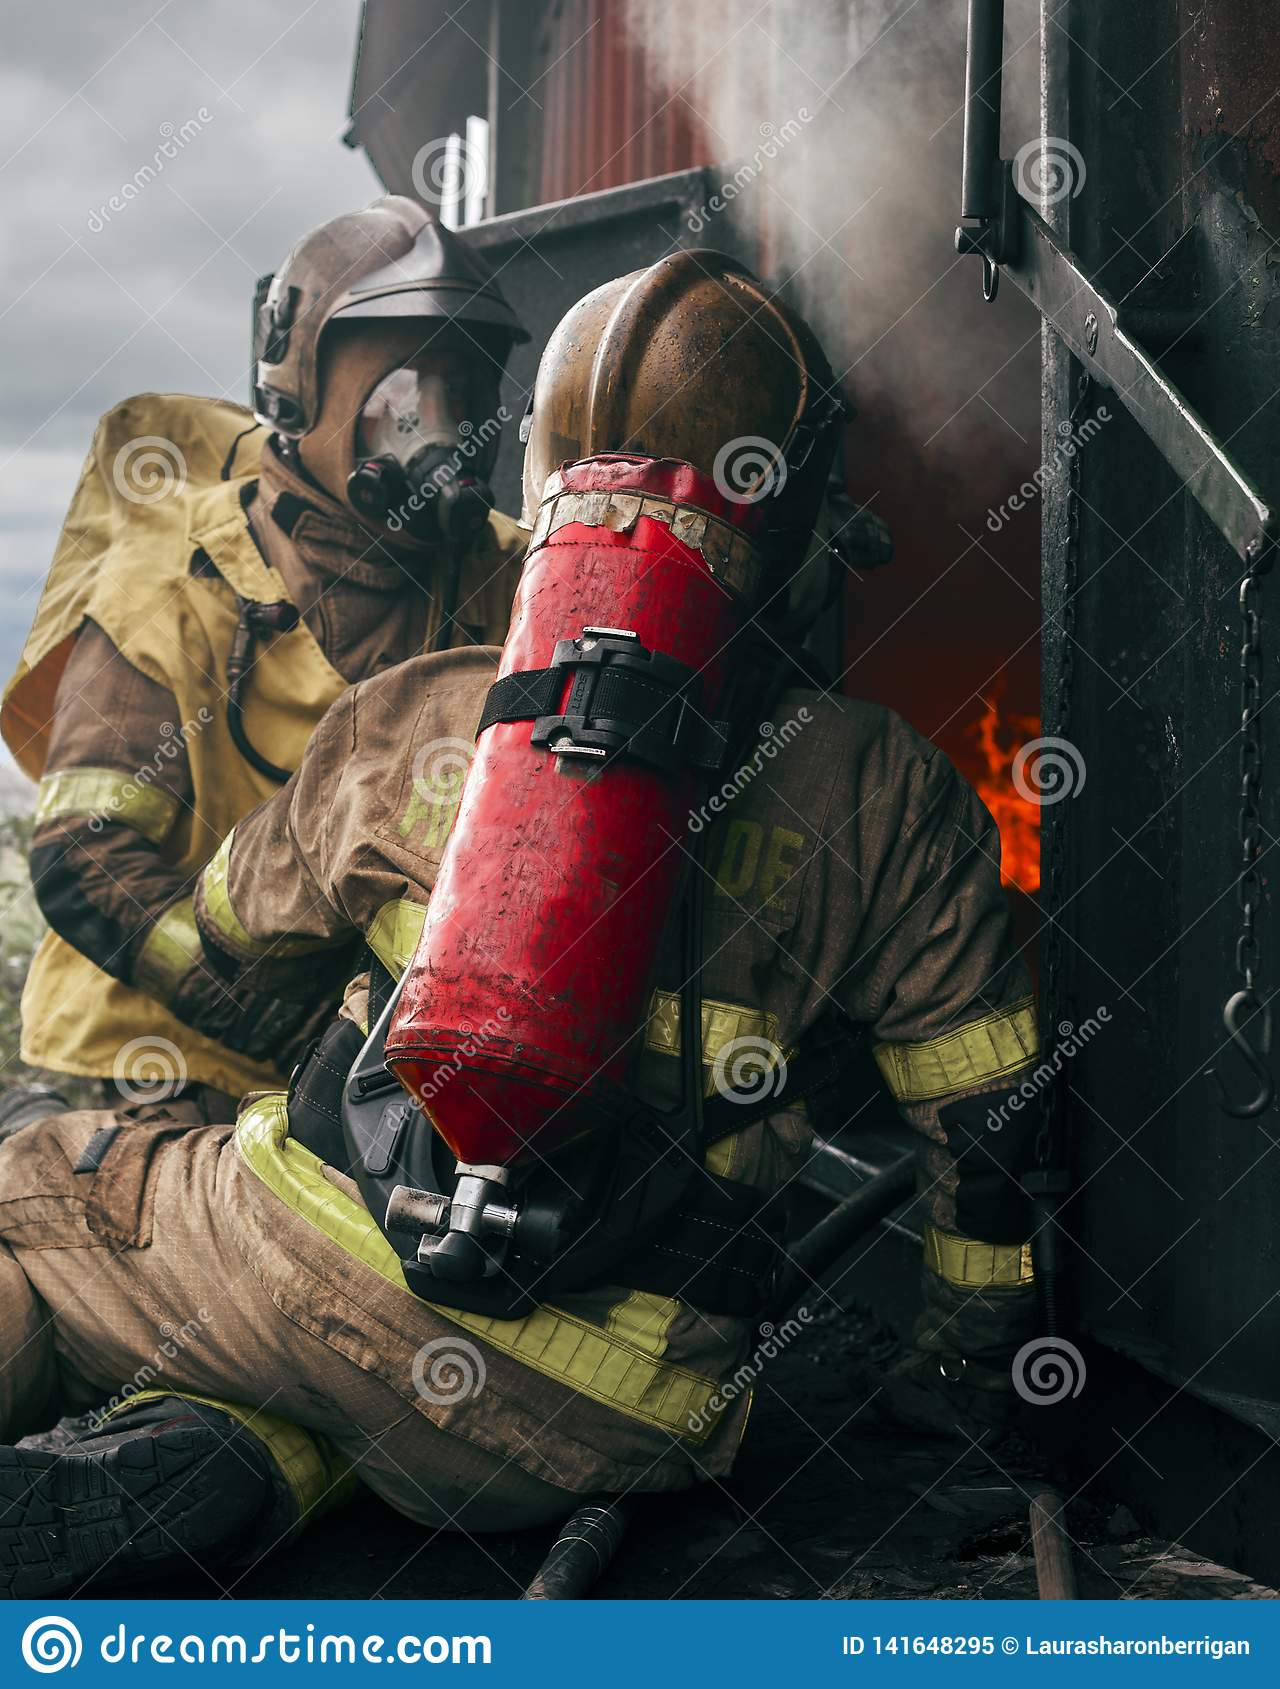 how to become a fireman in ireland